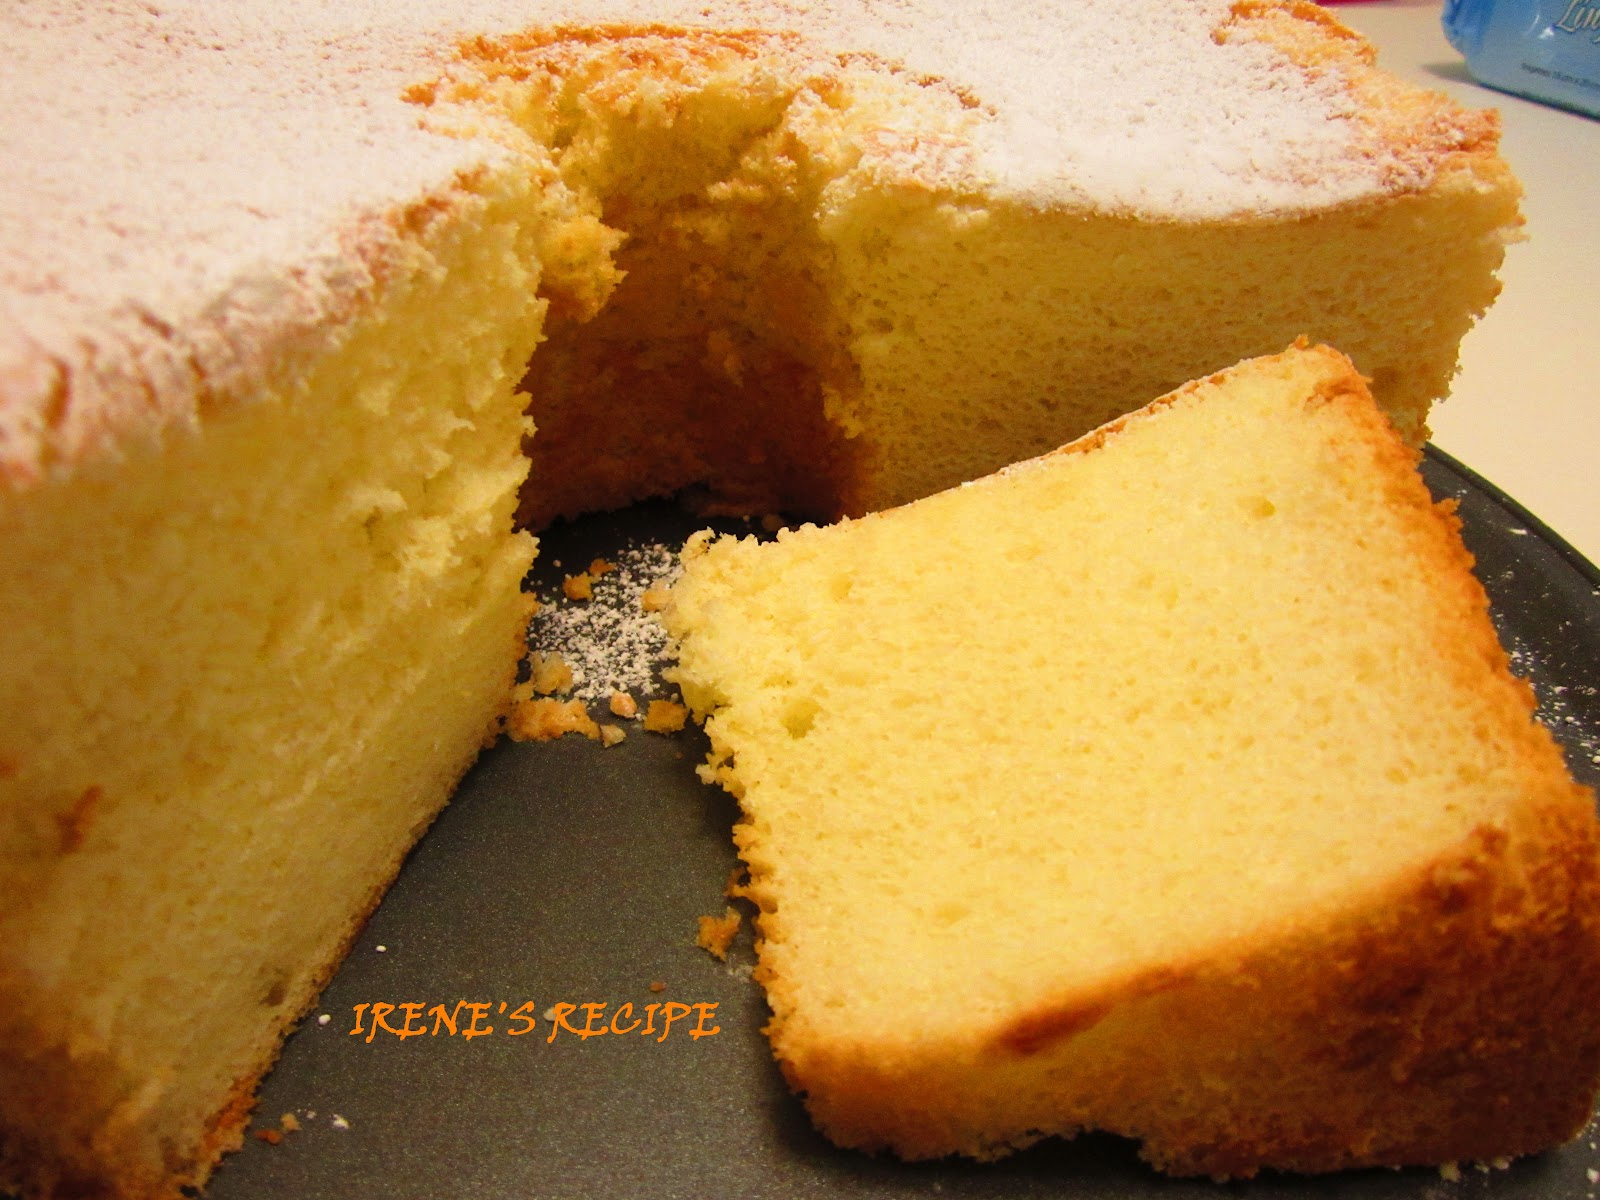 Irene's Recipe: Yummy Lemon Chiffon Cake (spongy and moist)